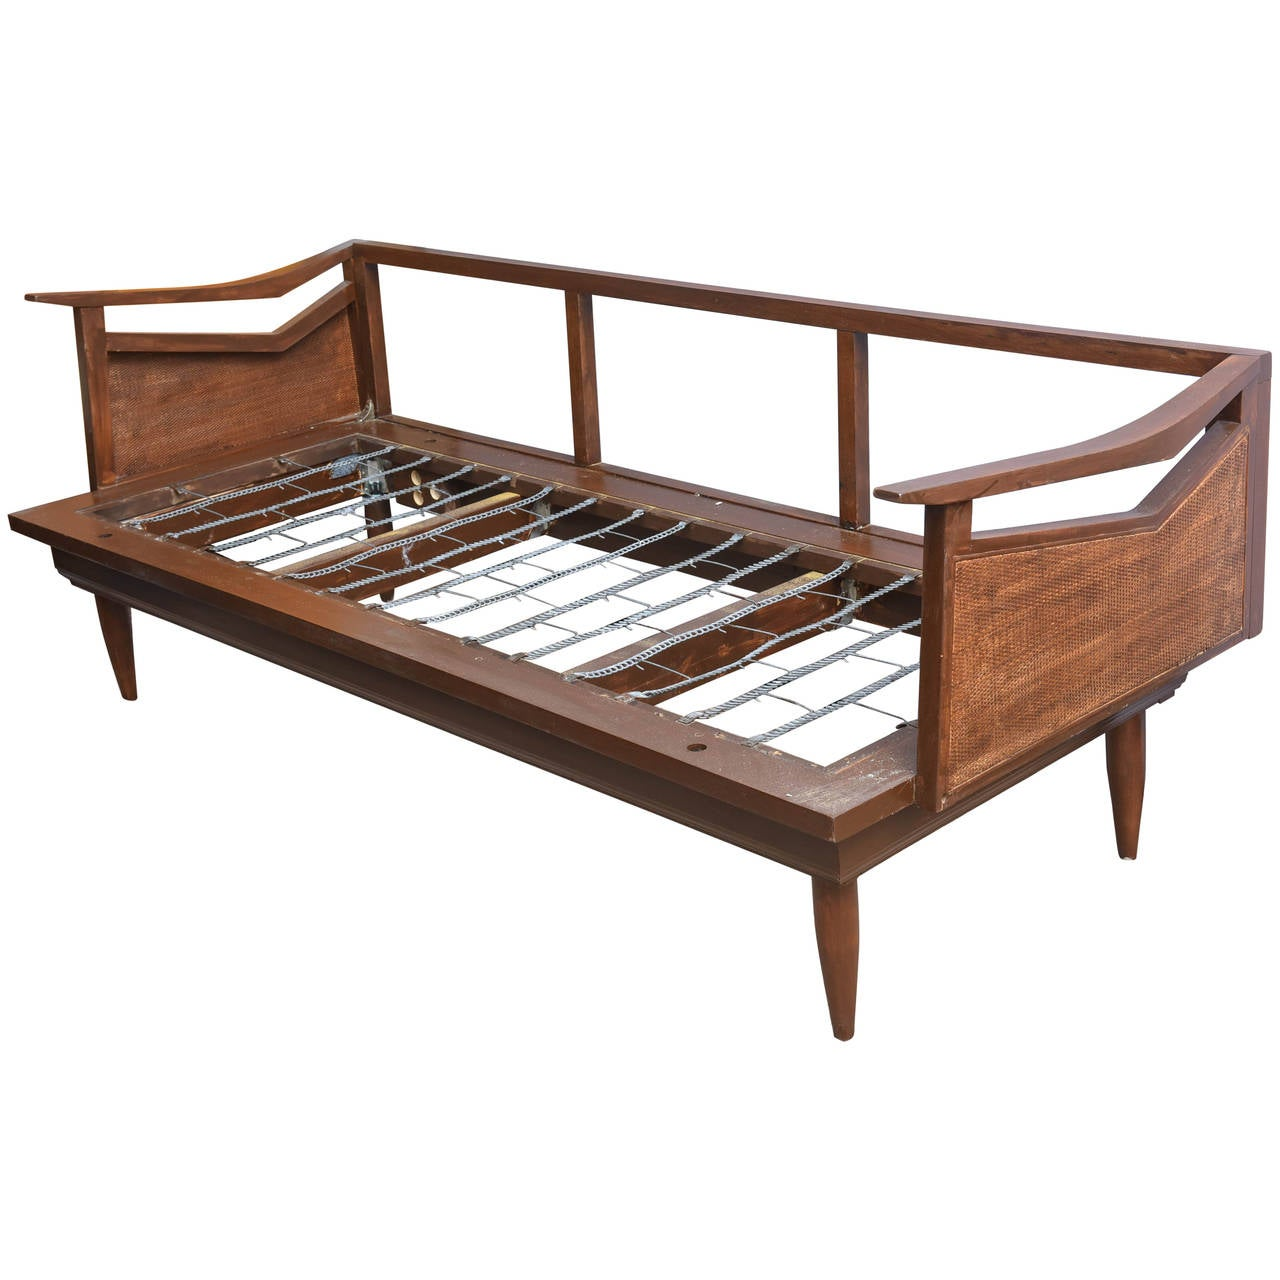 Restored Danish Teak and Cane Day Bed Attributed to Wegner, 1960s Denmark 1 - Restored Danish Teak And Cane Day Bed Attributed To Wegner, 1960s